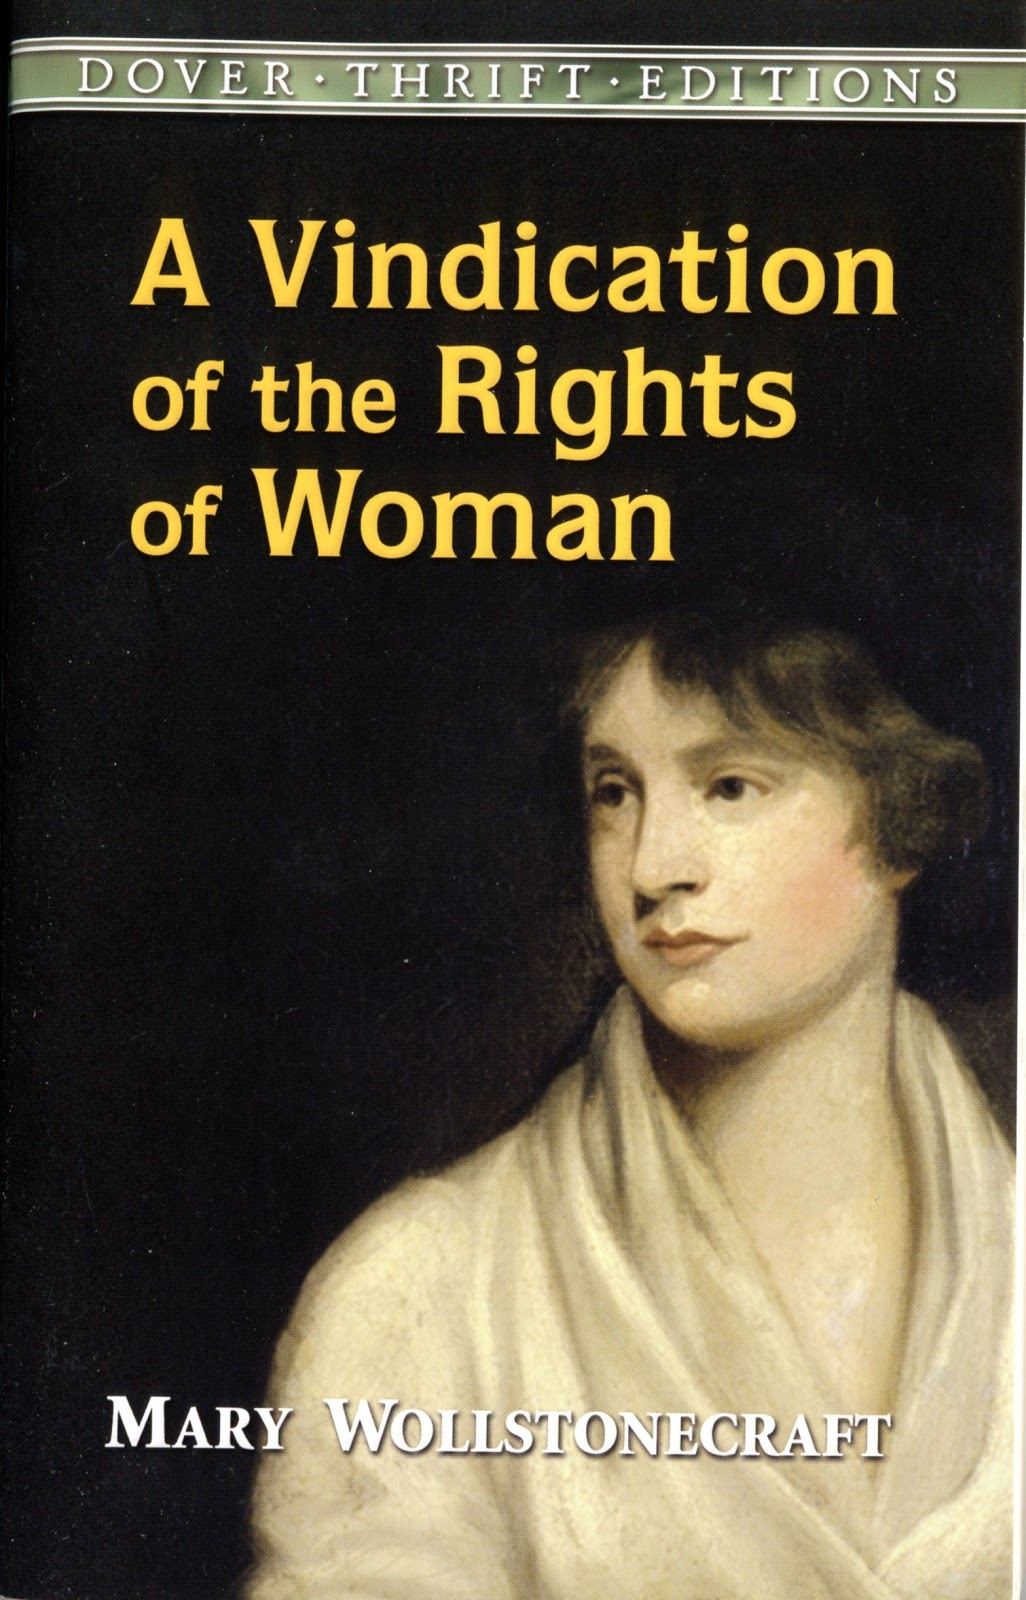 bb gls wollstonecraft vindicationofrightsofwomen jpg